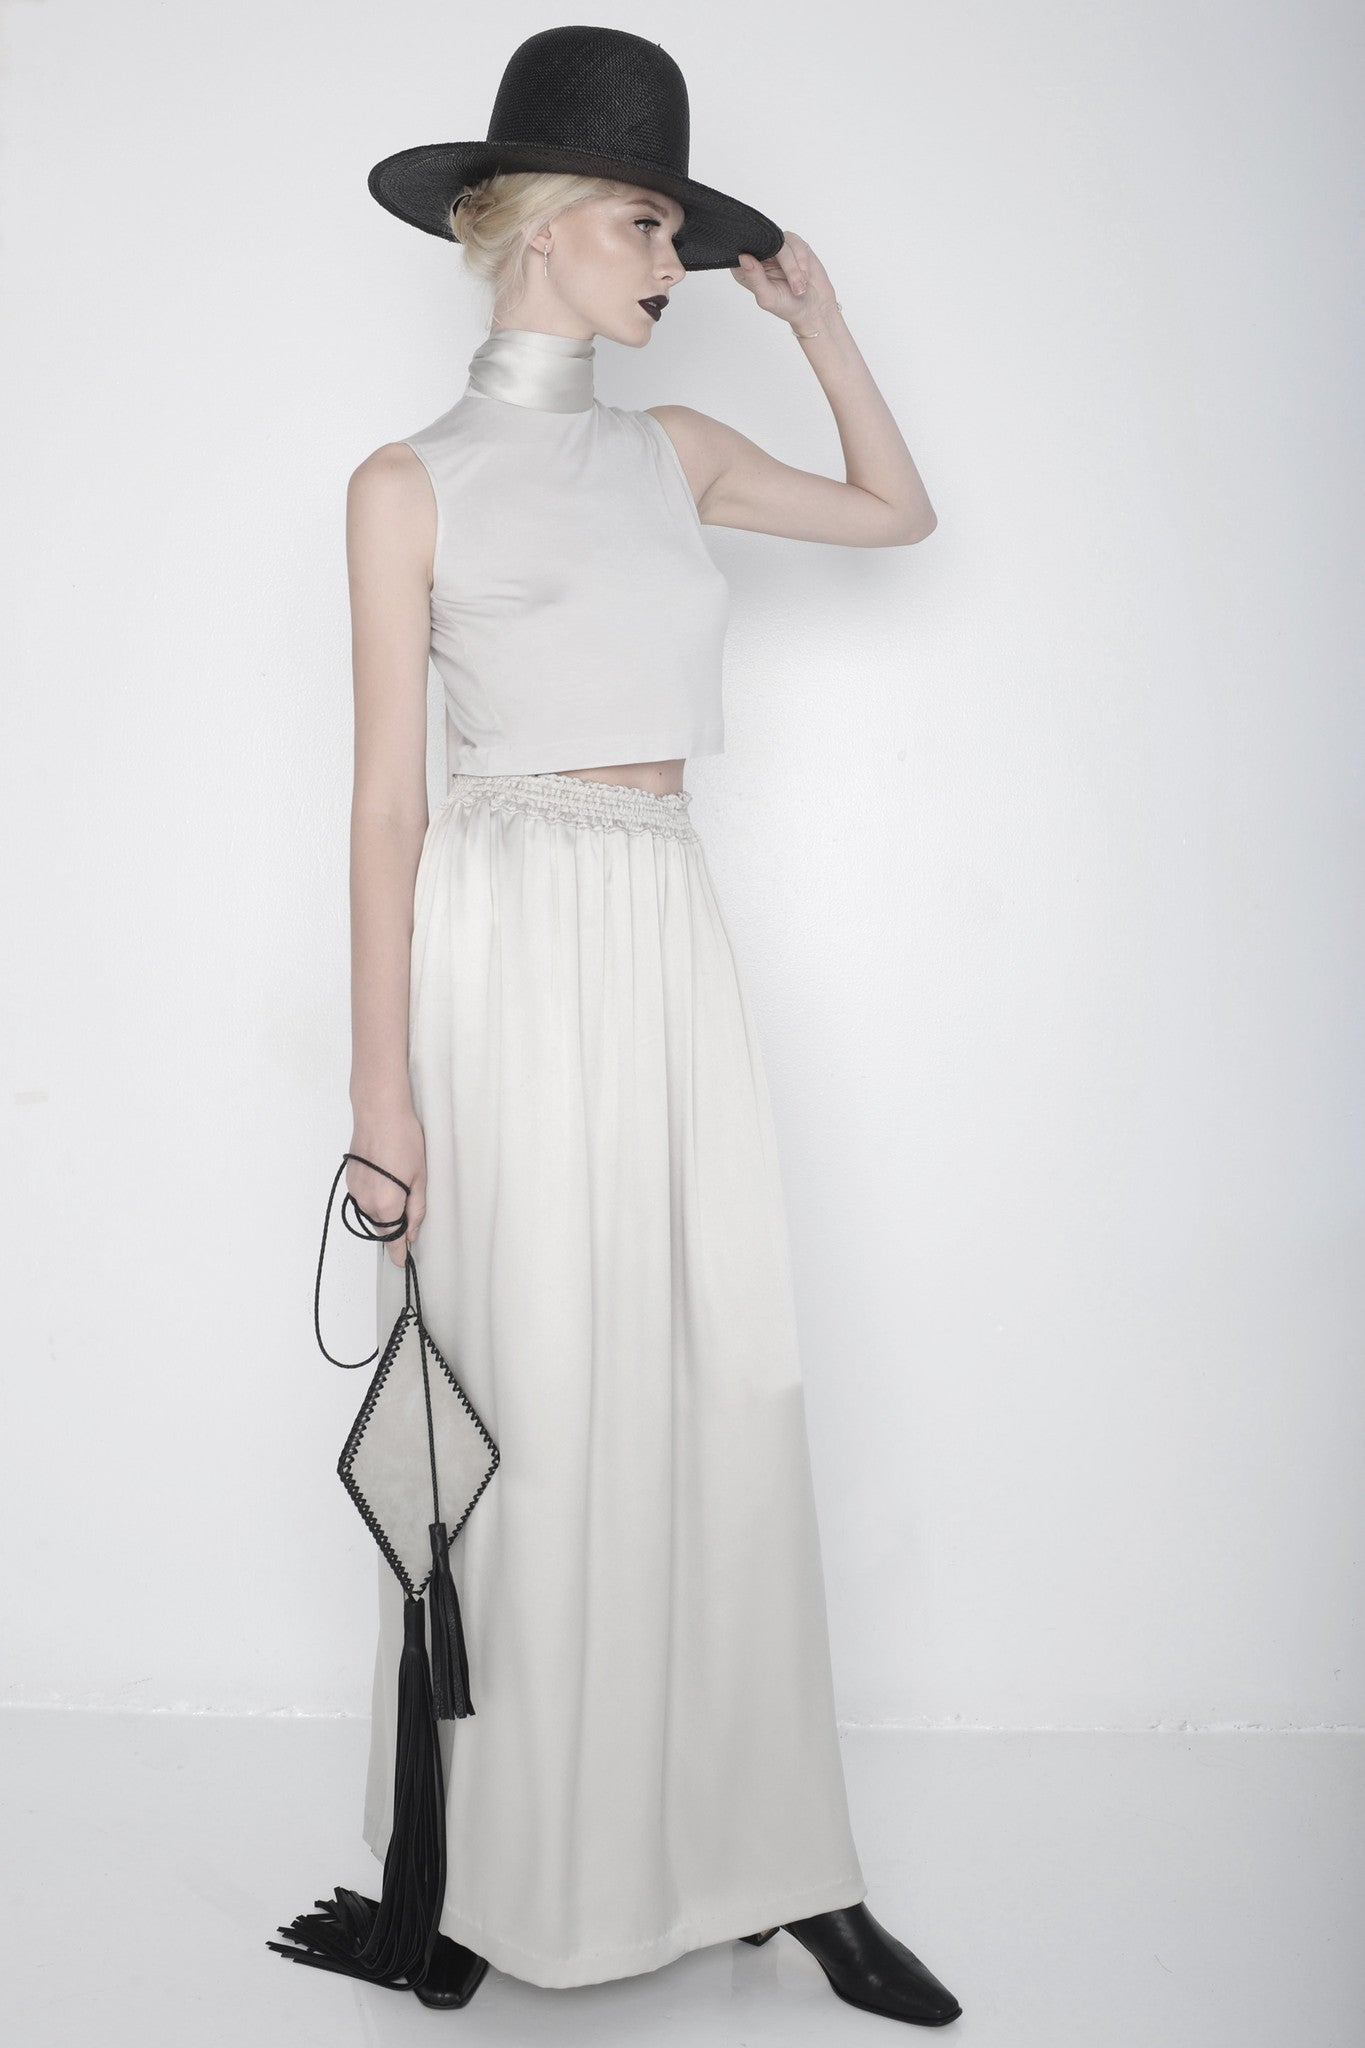 Daria Z IMG Model Wendy Nichol Clothing Designer Ready to Wear Fashion Runway Show SS16 Guardians of Light Grey Line Silver Silk Satin Mock Turtle Neck Sleeveless Crop Top Shirt Silver Satin Long High Waist Waisted Skirt side slit Black Straw Wide brim Hat Wide Silver Silk Satin Tie Choker Triangle Pyramid Sculpture Handmade in NYC Custom Fabric Tailoring Made to Order